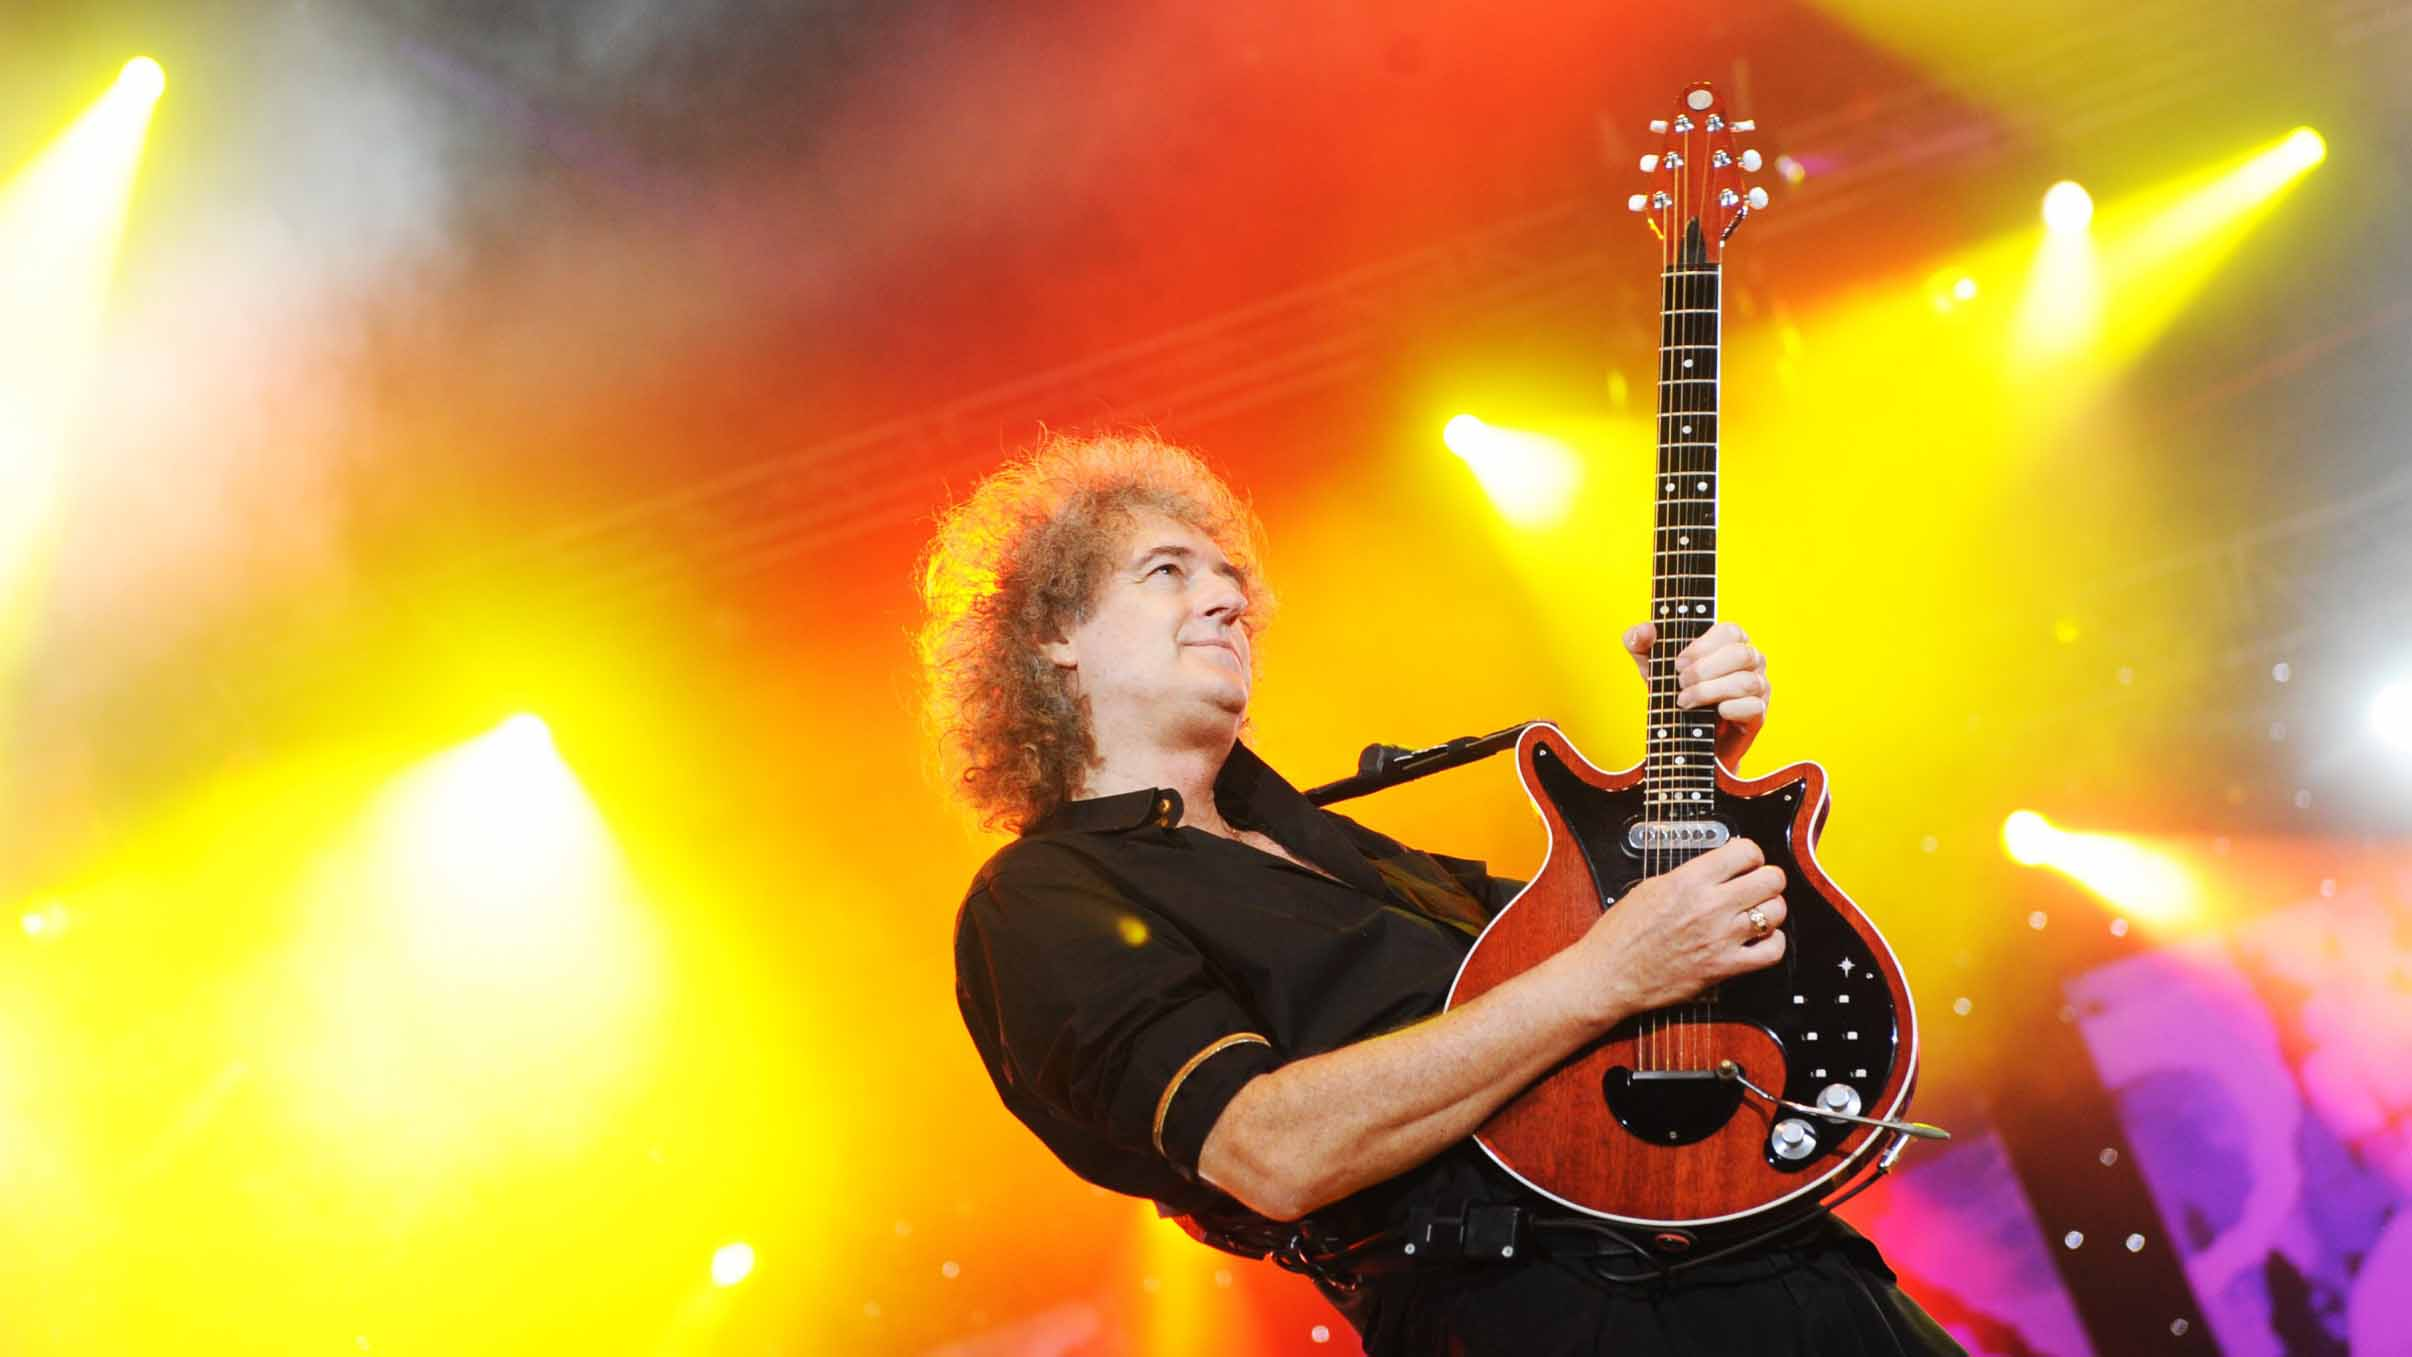 How to play guitar like Brian May